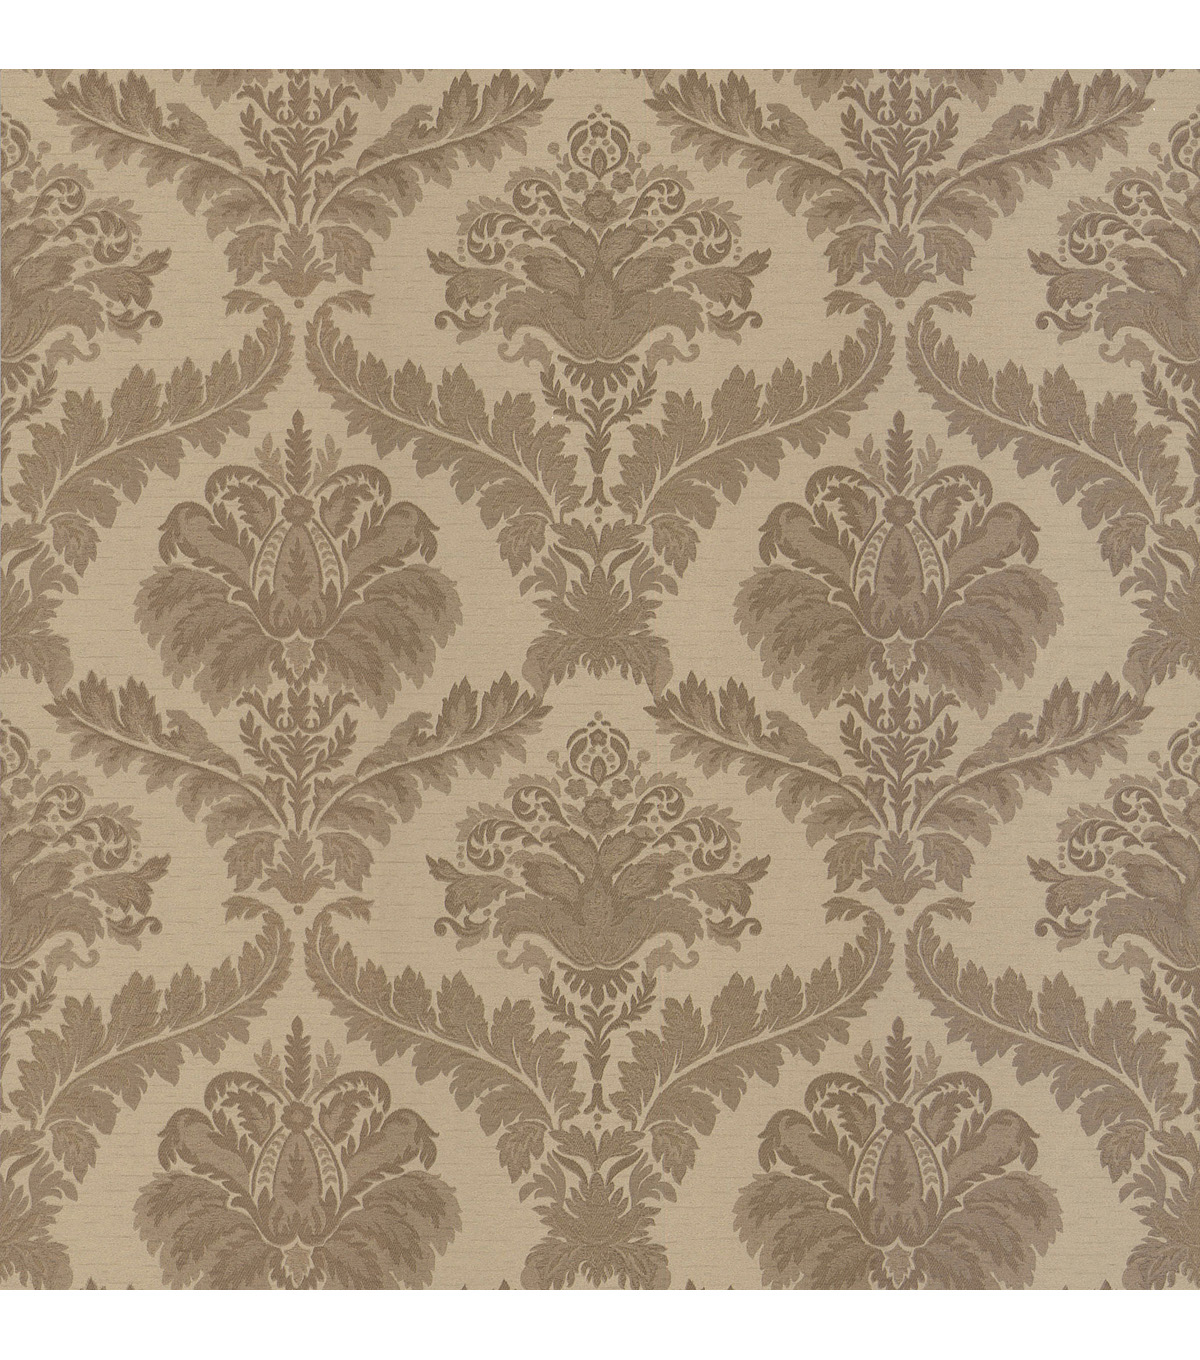 Arabella Gold Damask Wallpaper Sample